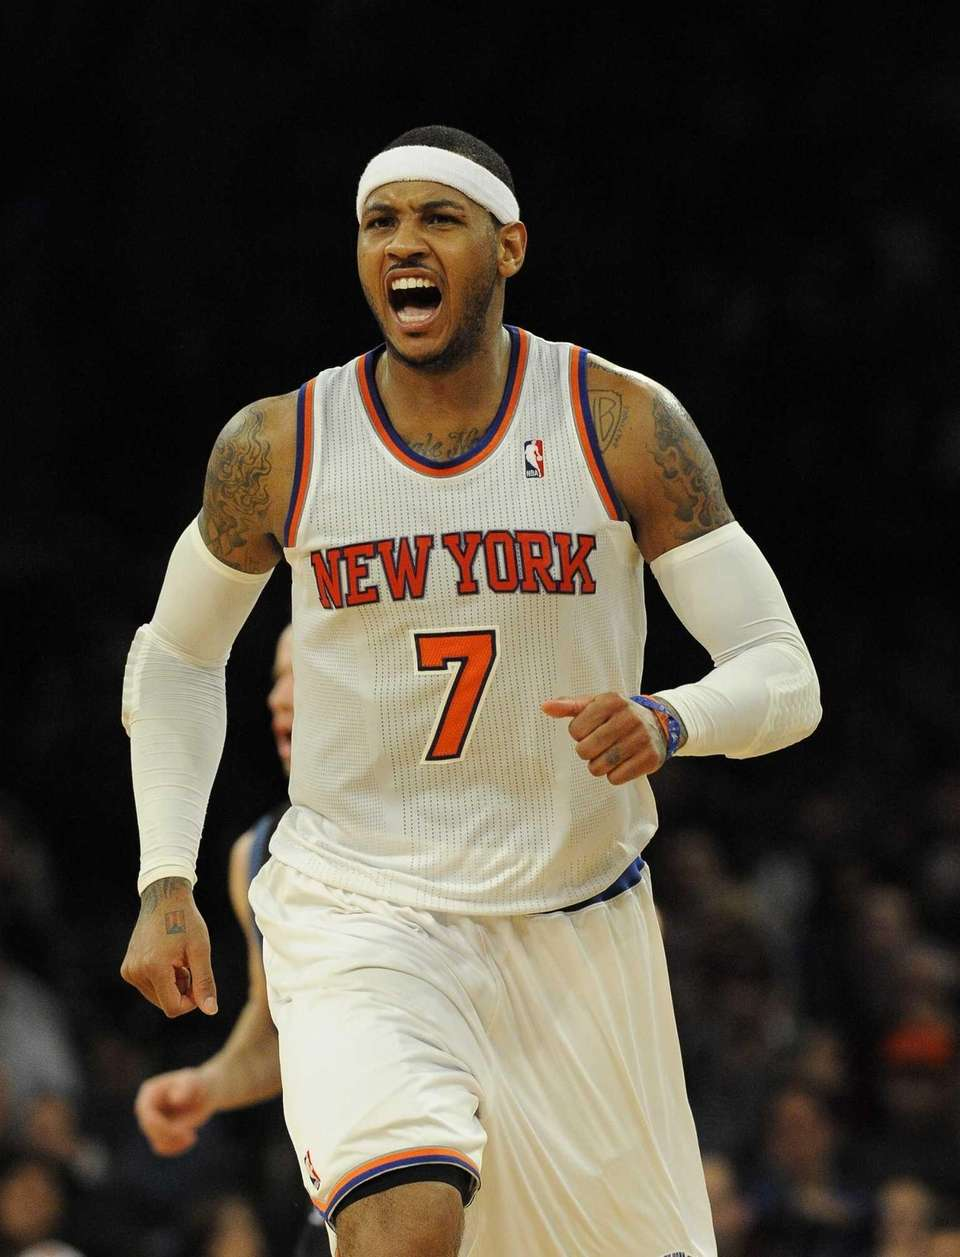 Carmelo Anthony reacts after scoring against the Minnesota